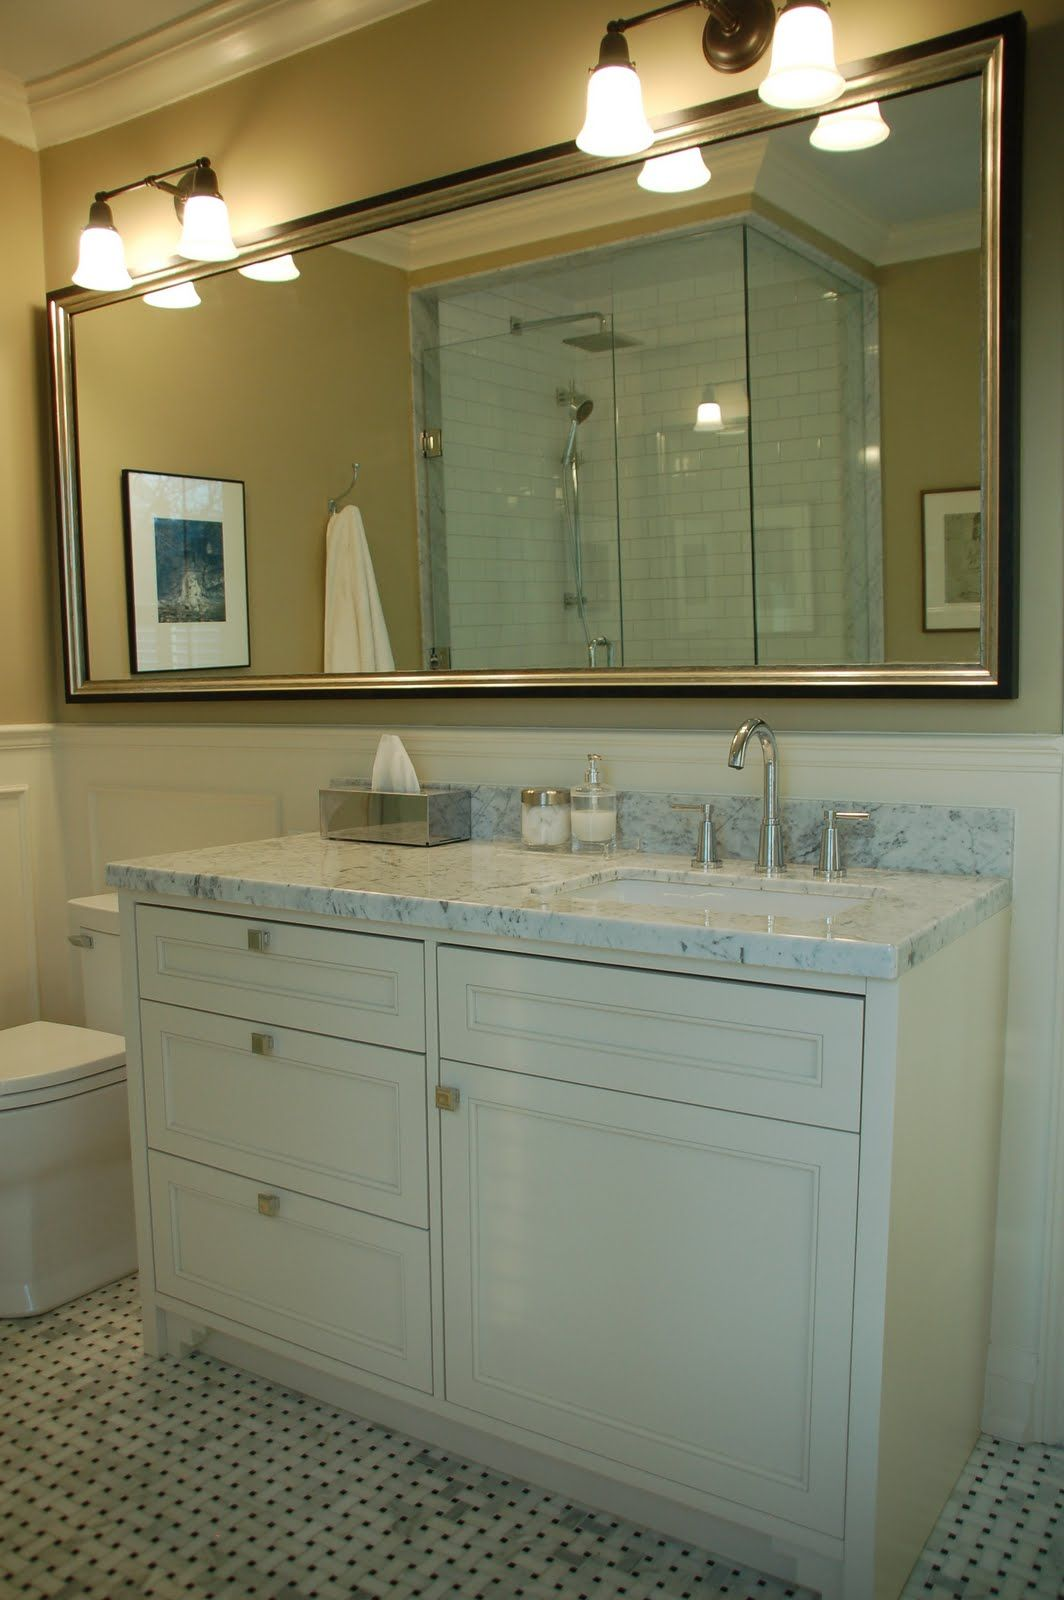 Pictures In Gallery Offset vanity